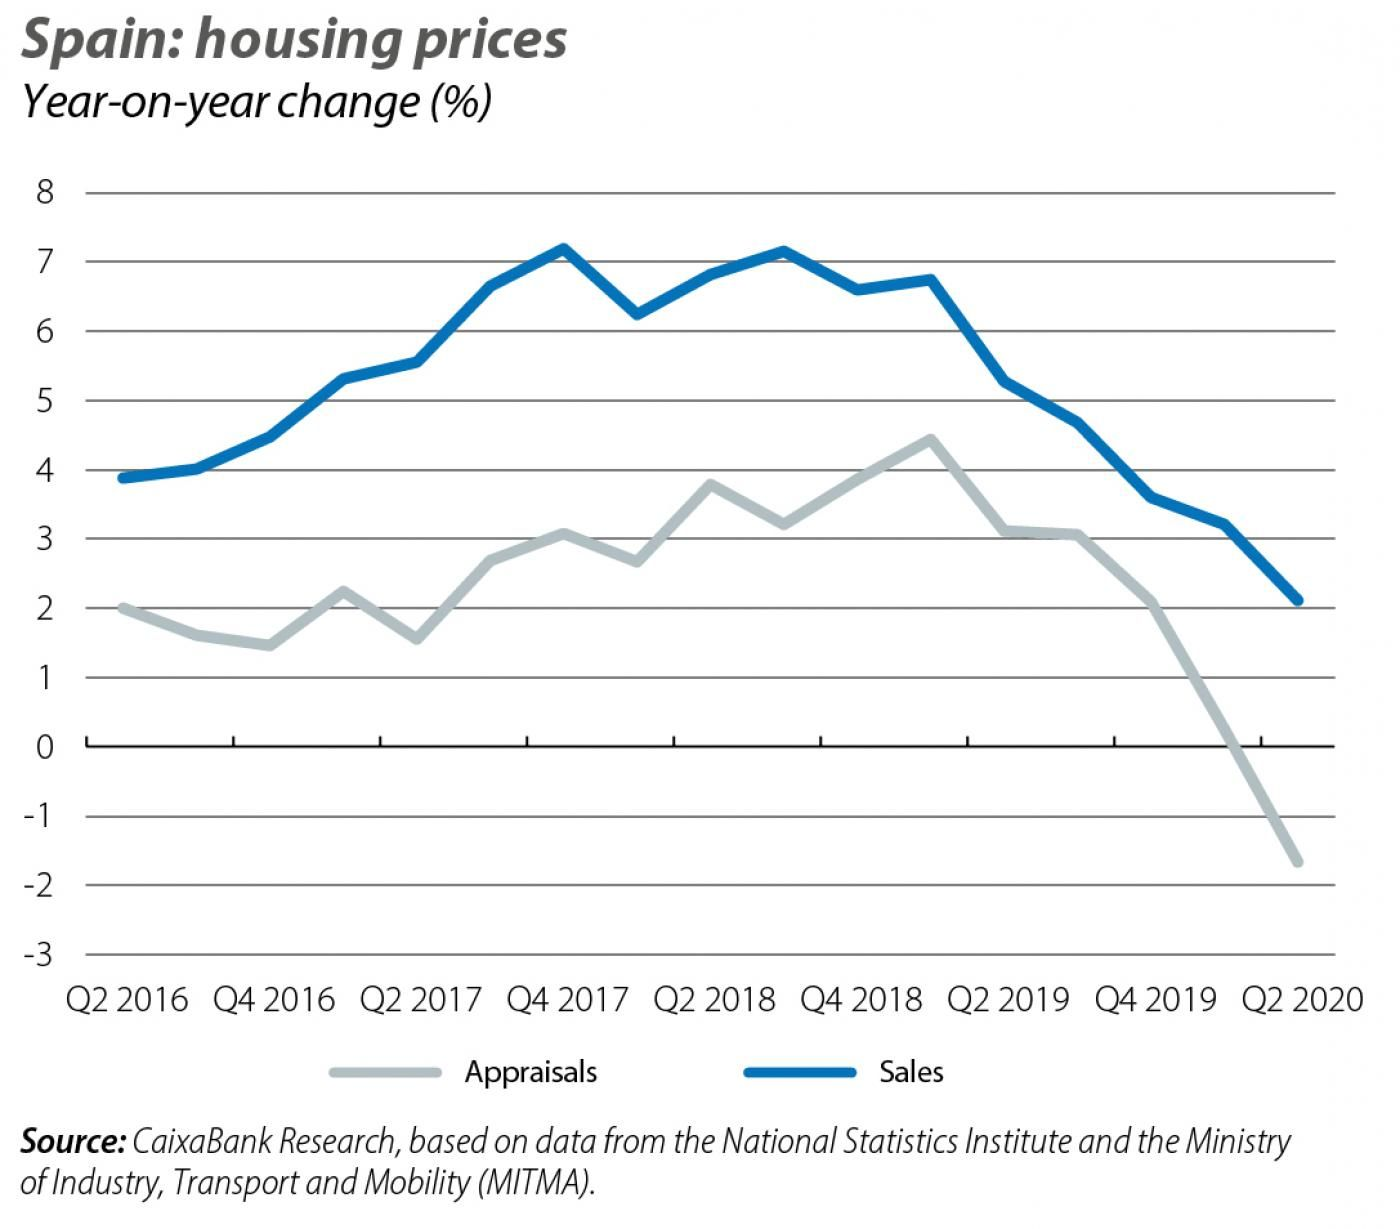 Spain: housing prices